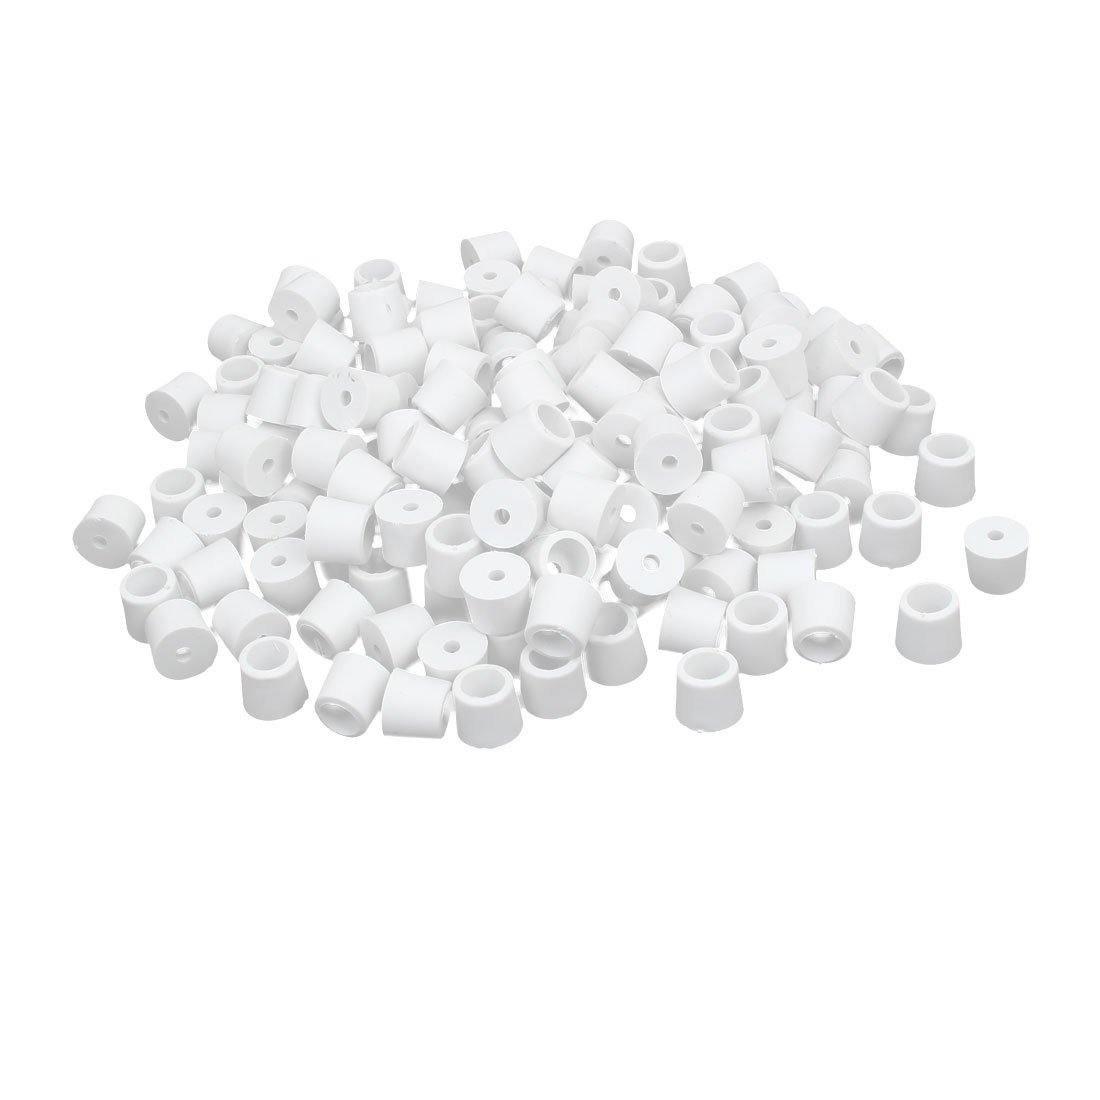 Aexit 17mmx15mm Rubber Furniture Accessories Conical Non-Slip Cover Tip Furniture Floor Pads Furniture Hanging Hardware White 200pcs